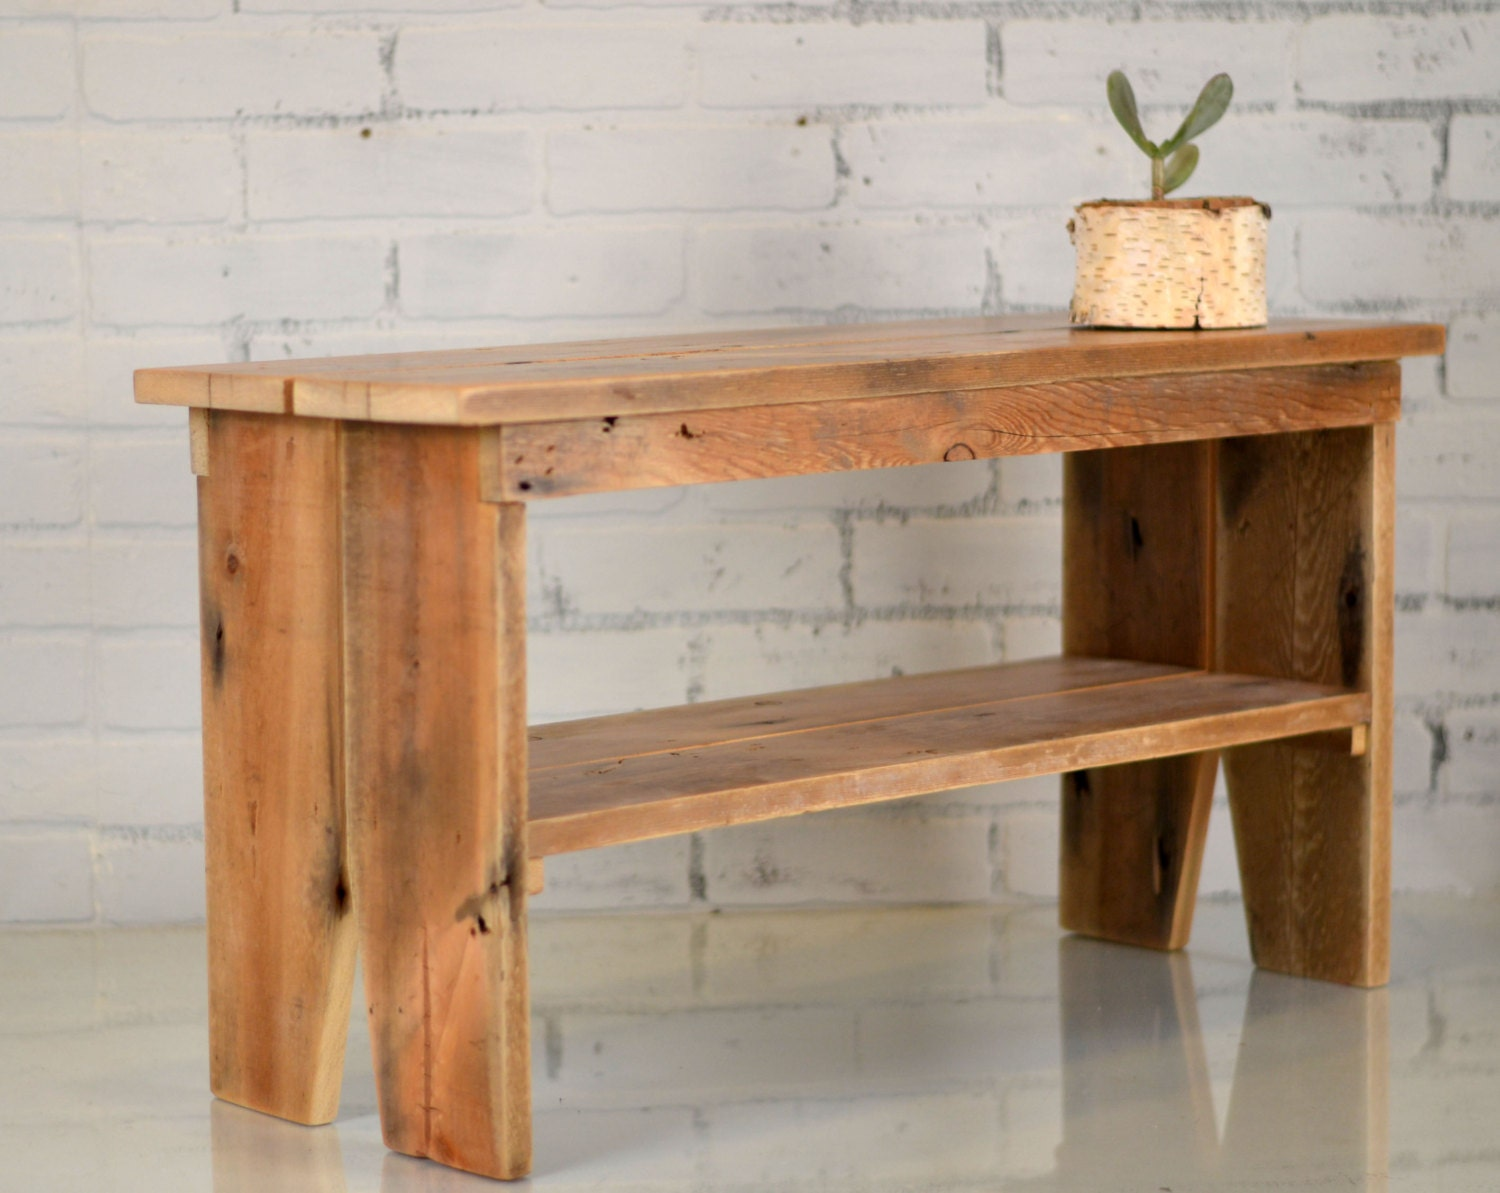 Reclaimed Wood Pine Bench Indoor Cottage Seating Upcycled